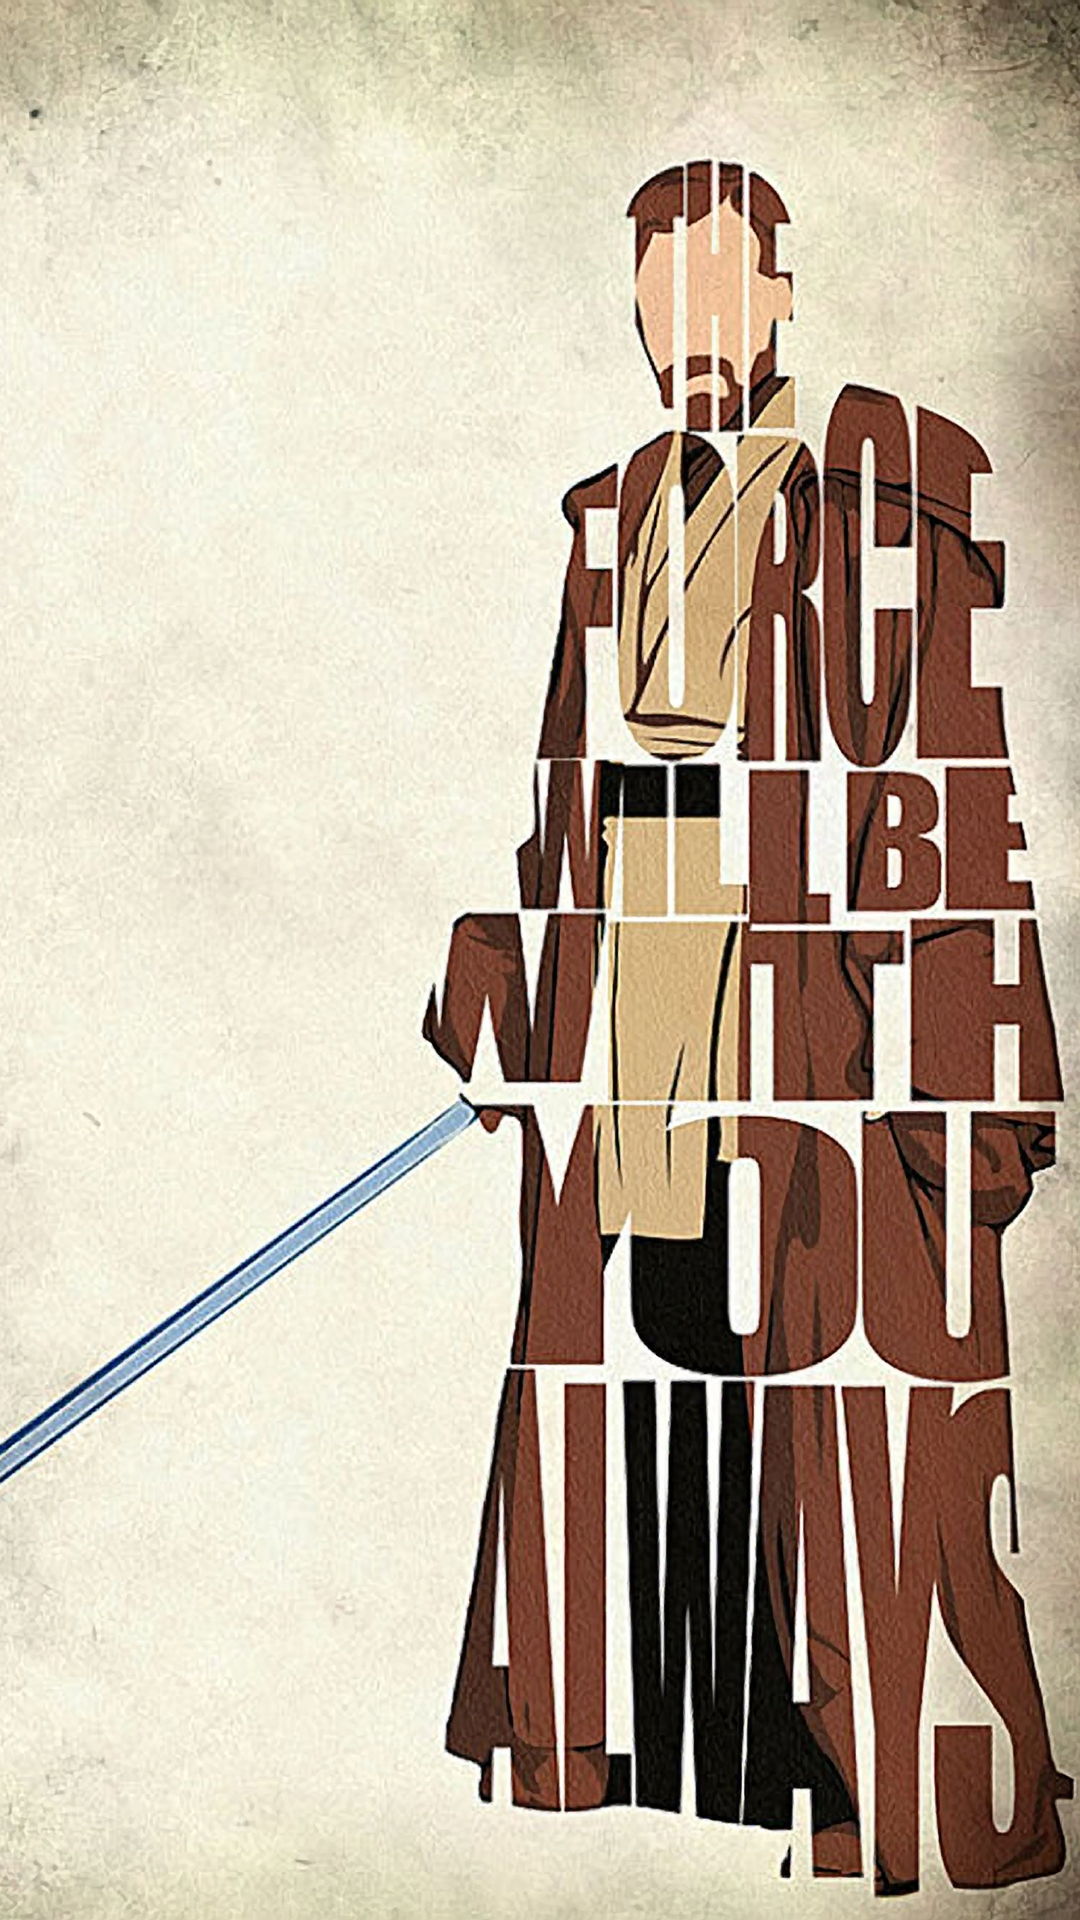 Obi wan kenobi quotes quotesgram - Star wars quotes wallpaper ...